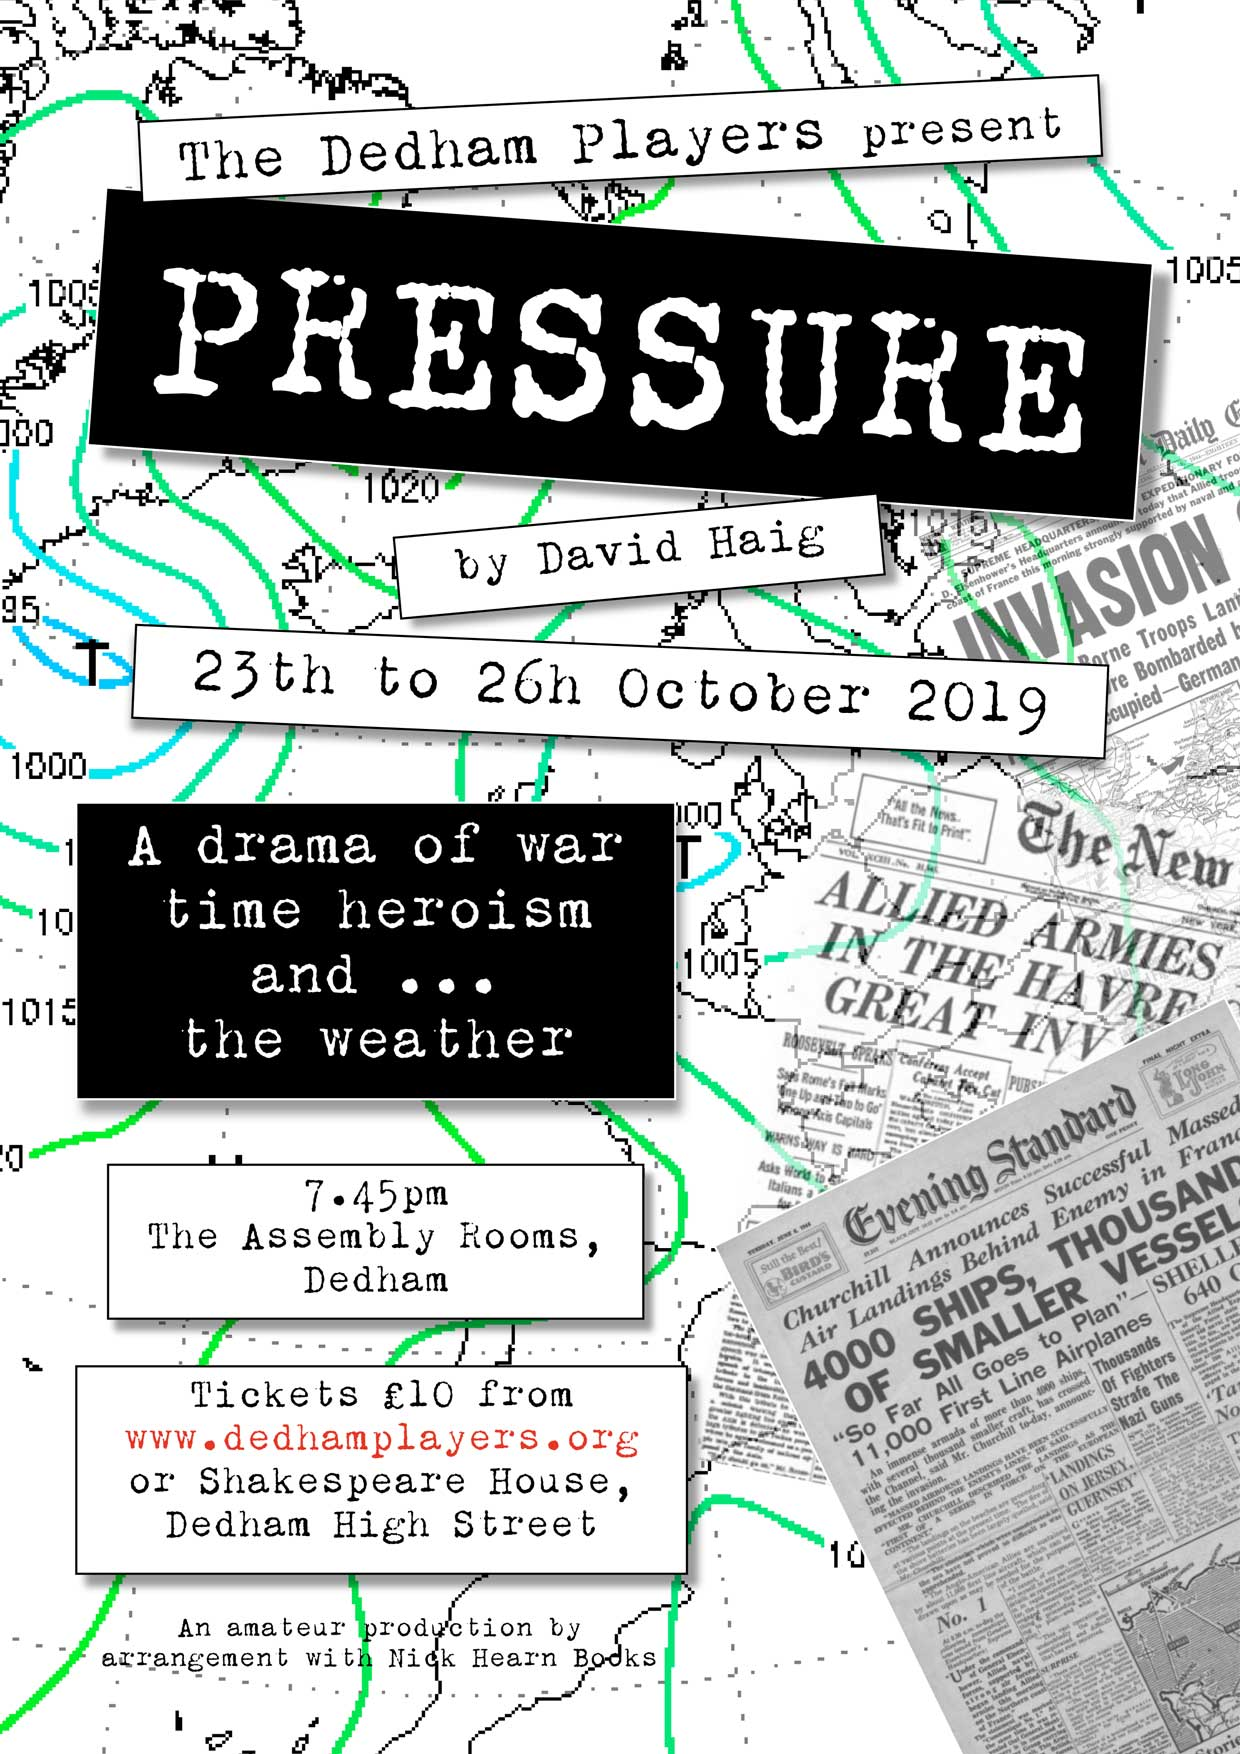 PRESSURE by David Haig banner image